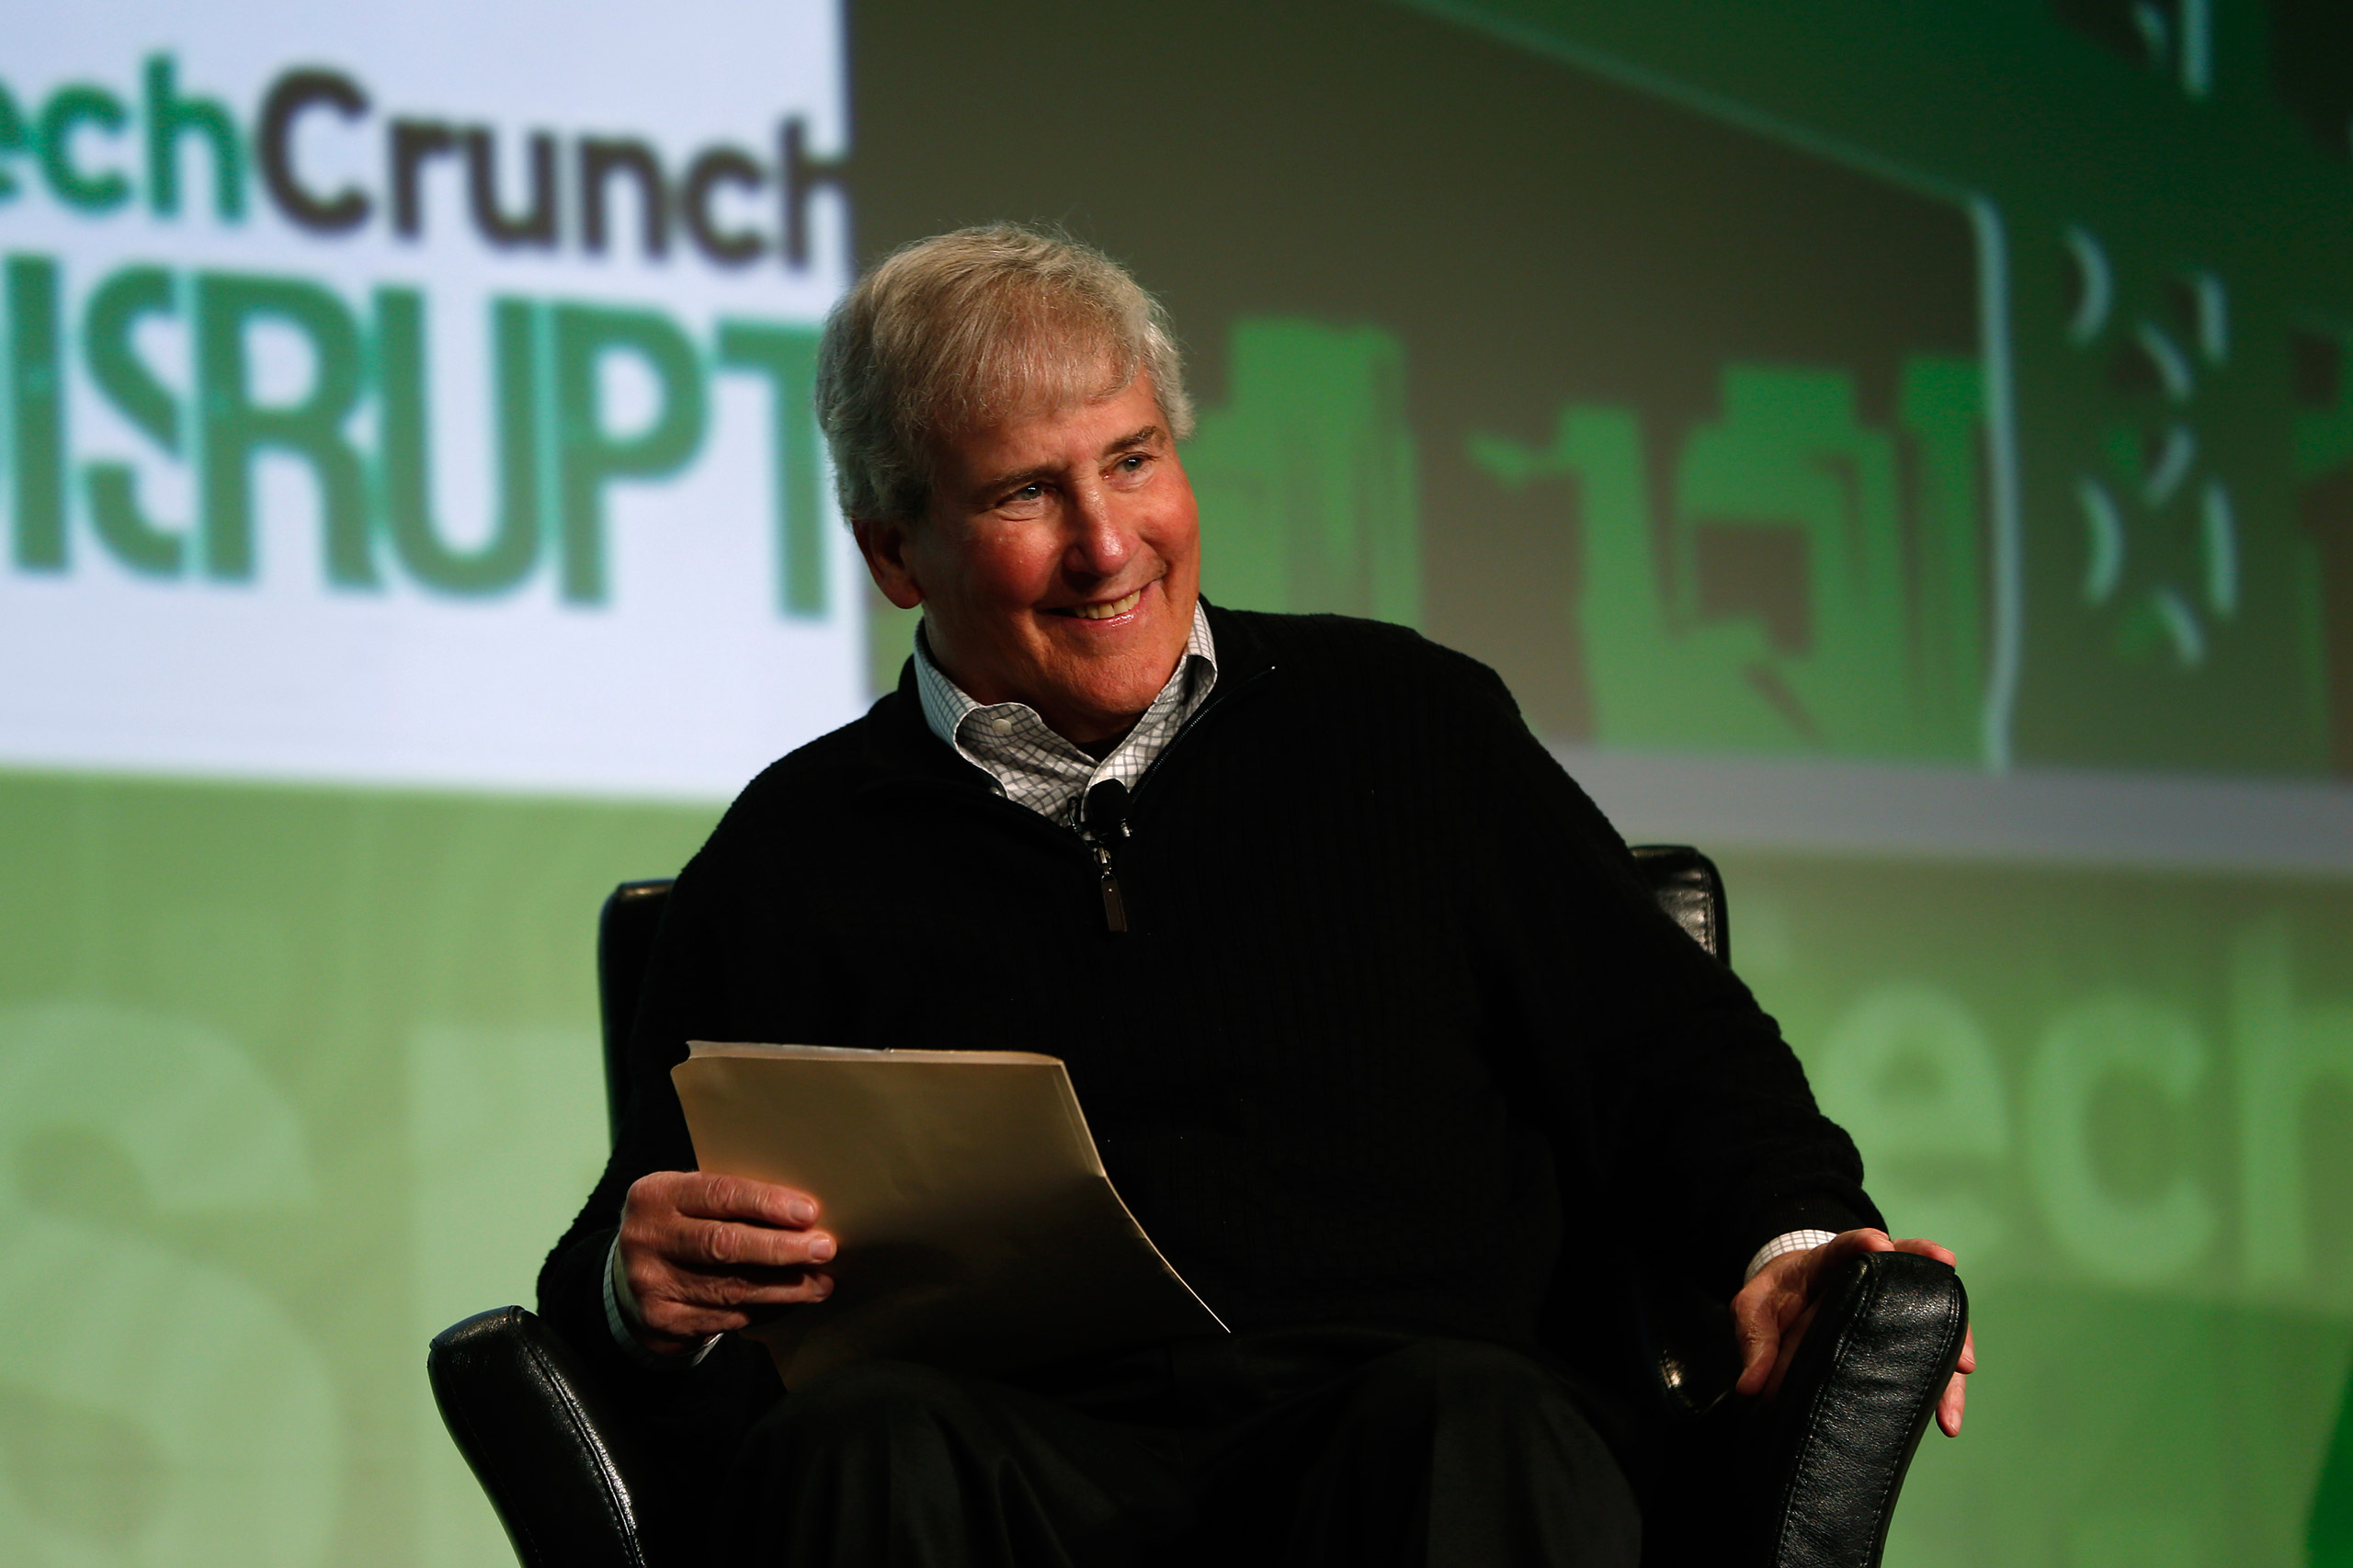 Bill Campbell, chairman of the board and former chief executive of Intuit Inc., moderating a chat with Ben Horowitz of Andreessen Horowitz during day one of TechCrunch Disrupt SF 2012 event at the San Francisco Design Center Concourse in San Francisco on Sept. 10, 2012.